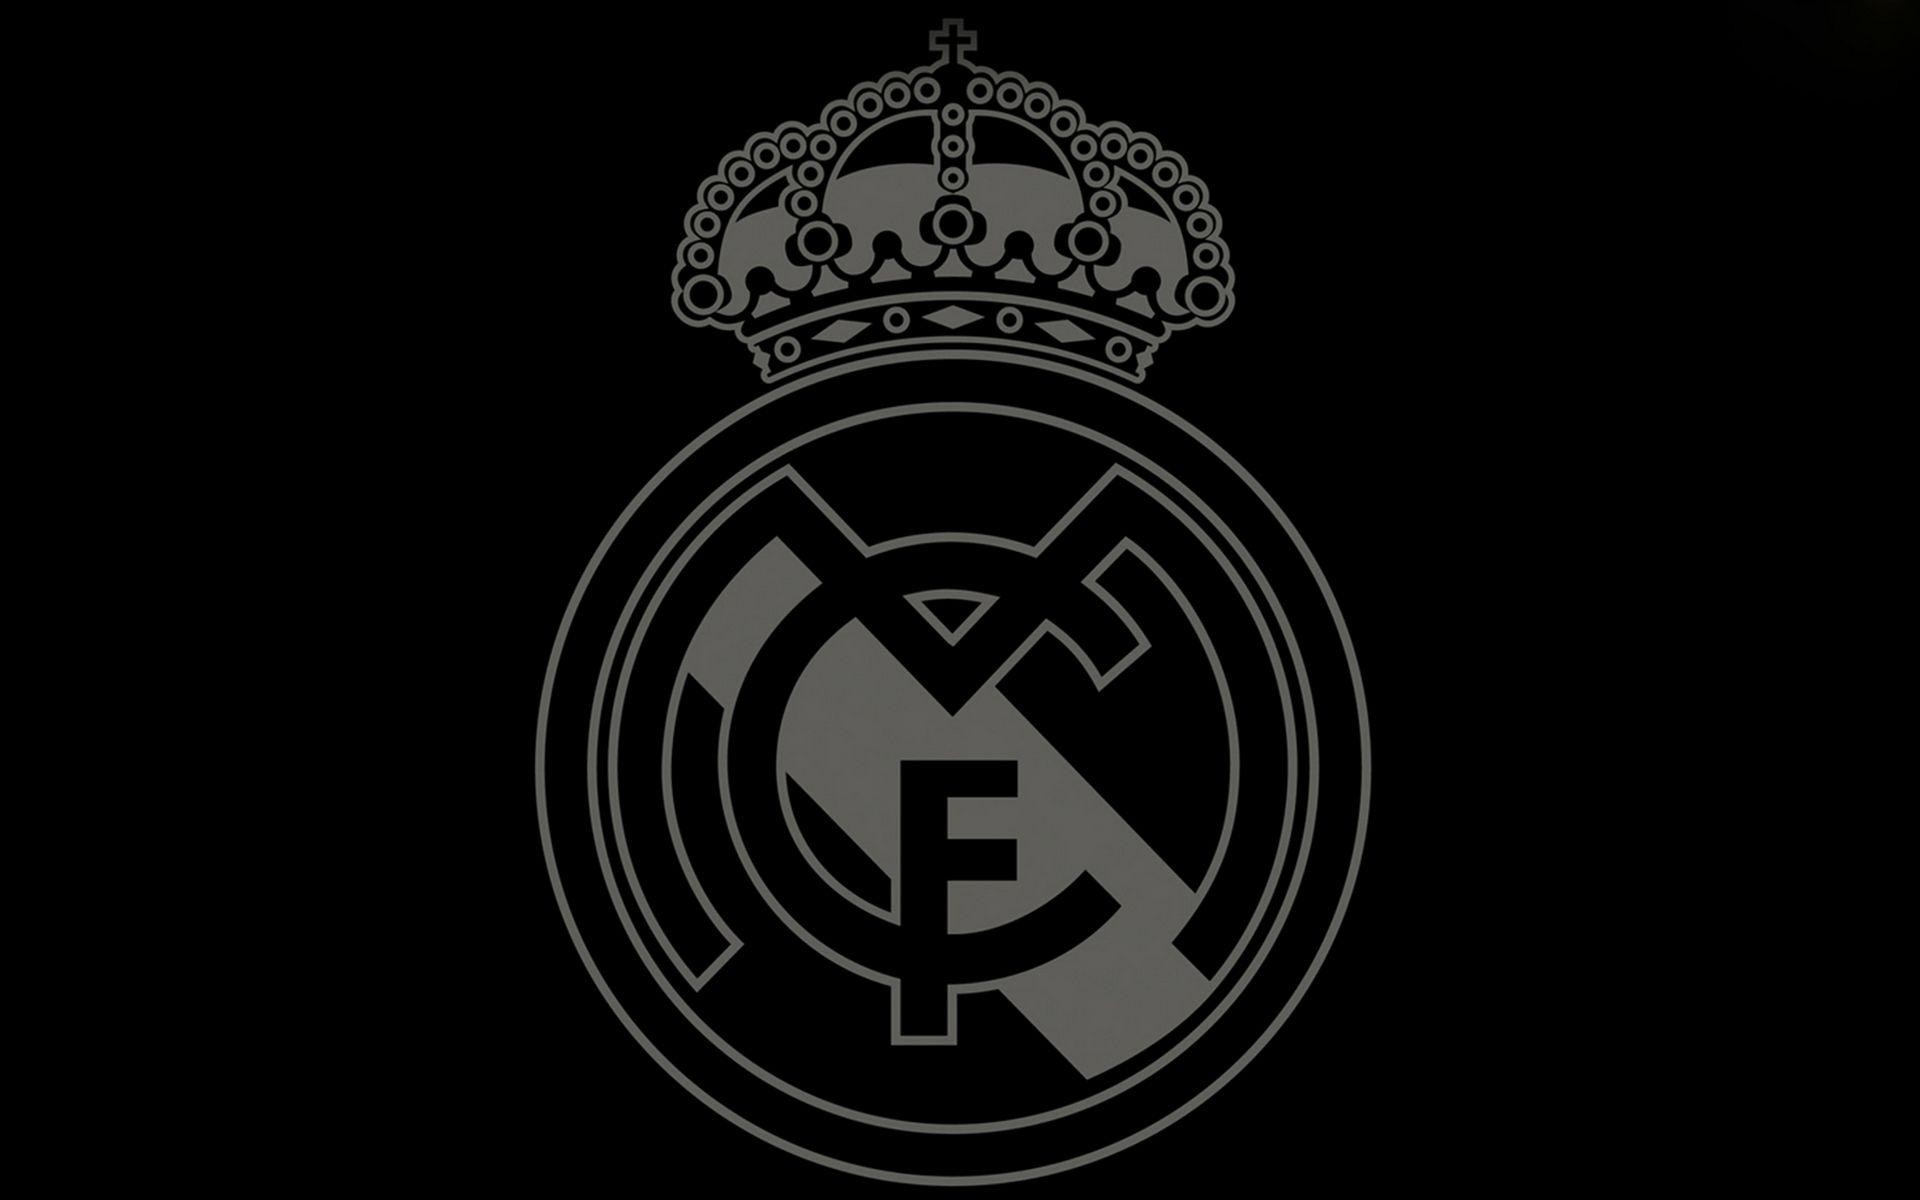 1920x1200 real madrid wallpaper hd hd wallpapers ›› Page 2 | Best Wallpaper HD